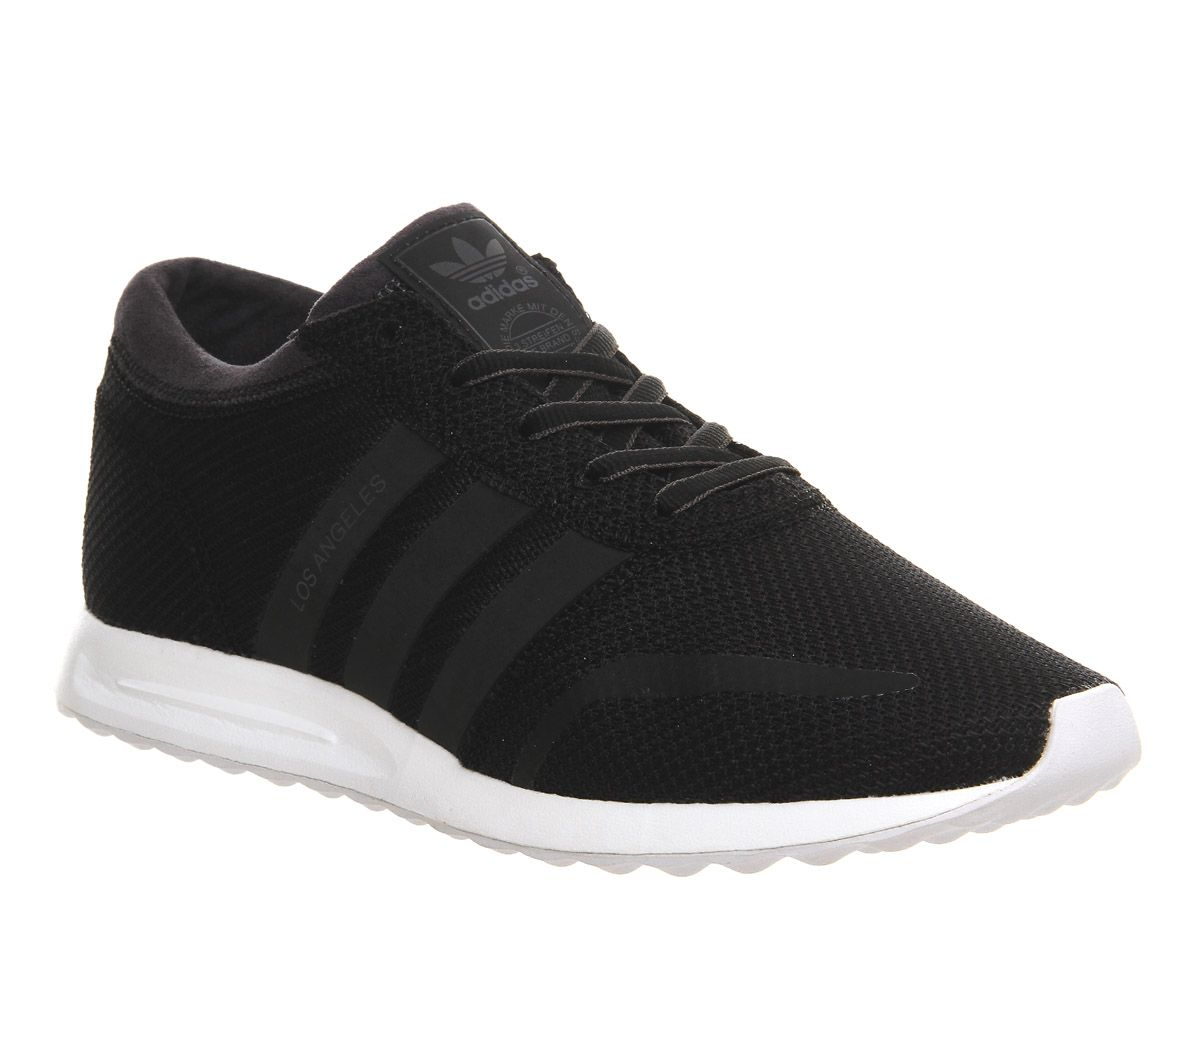 Adidas Los Angeles Black White Reflective - Unisex Sports